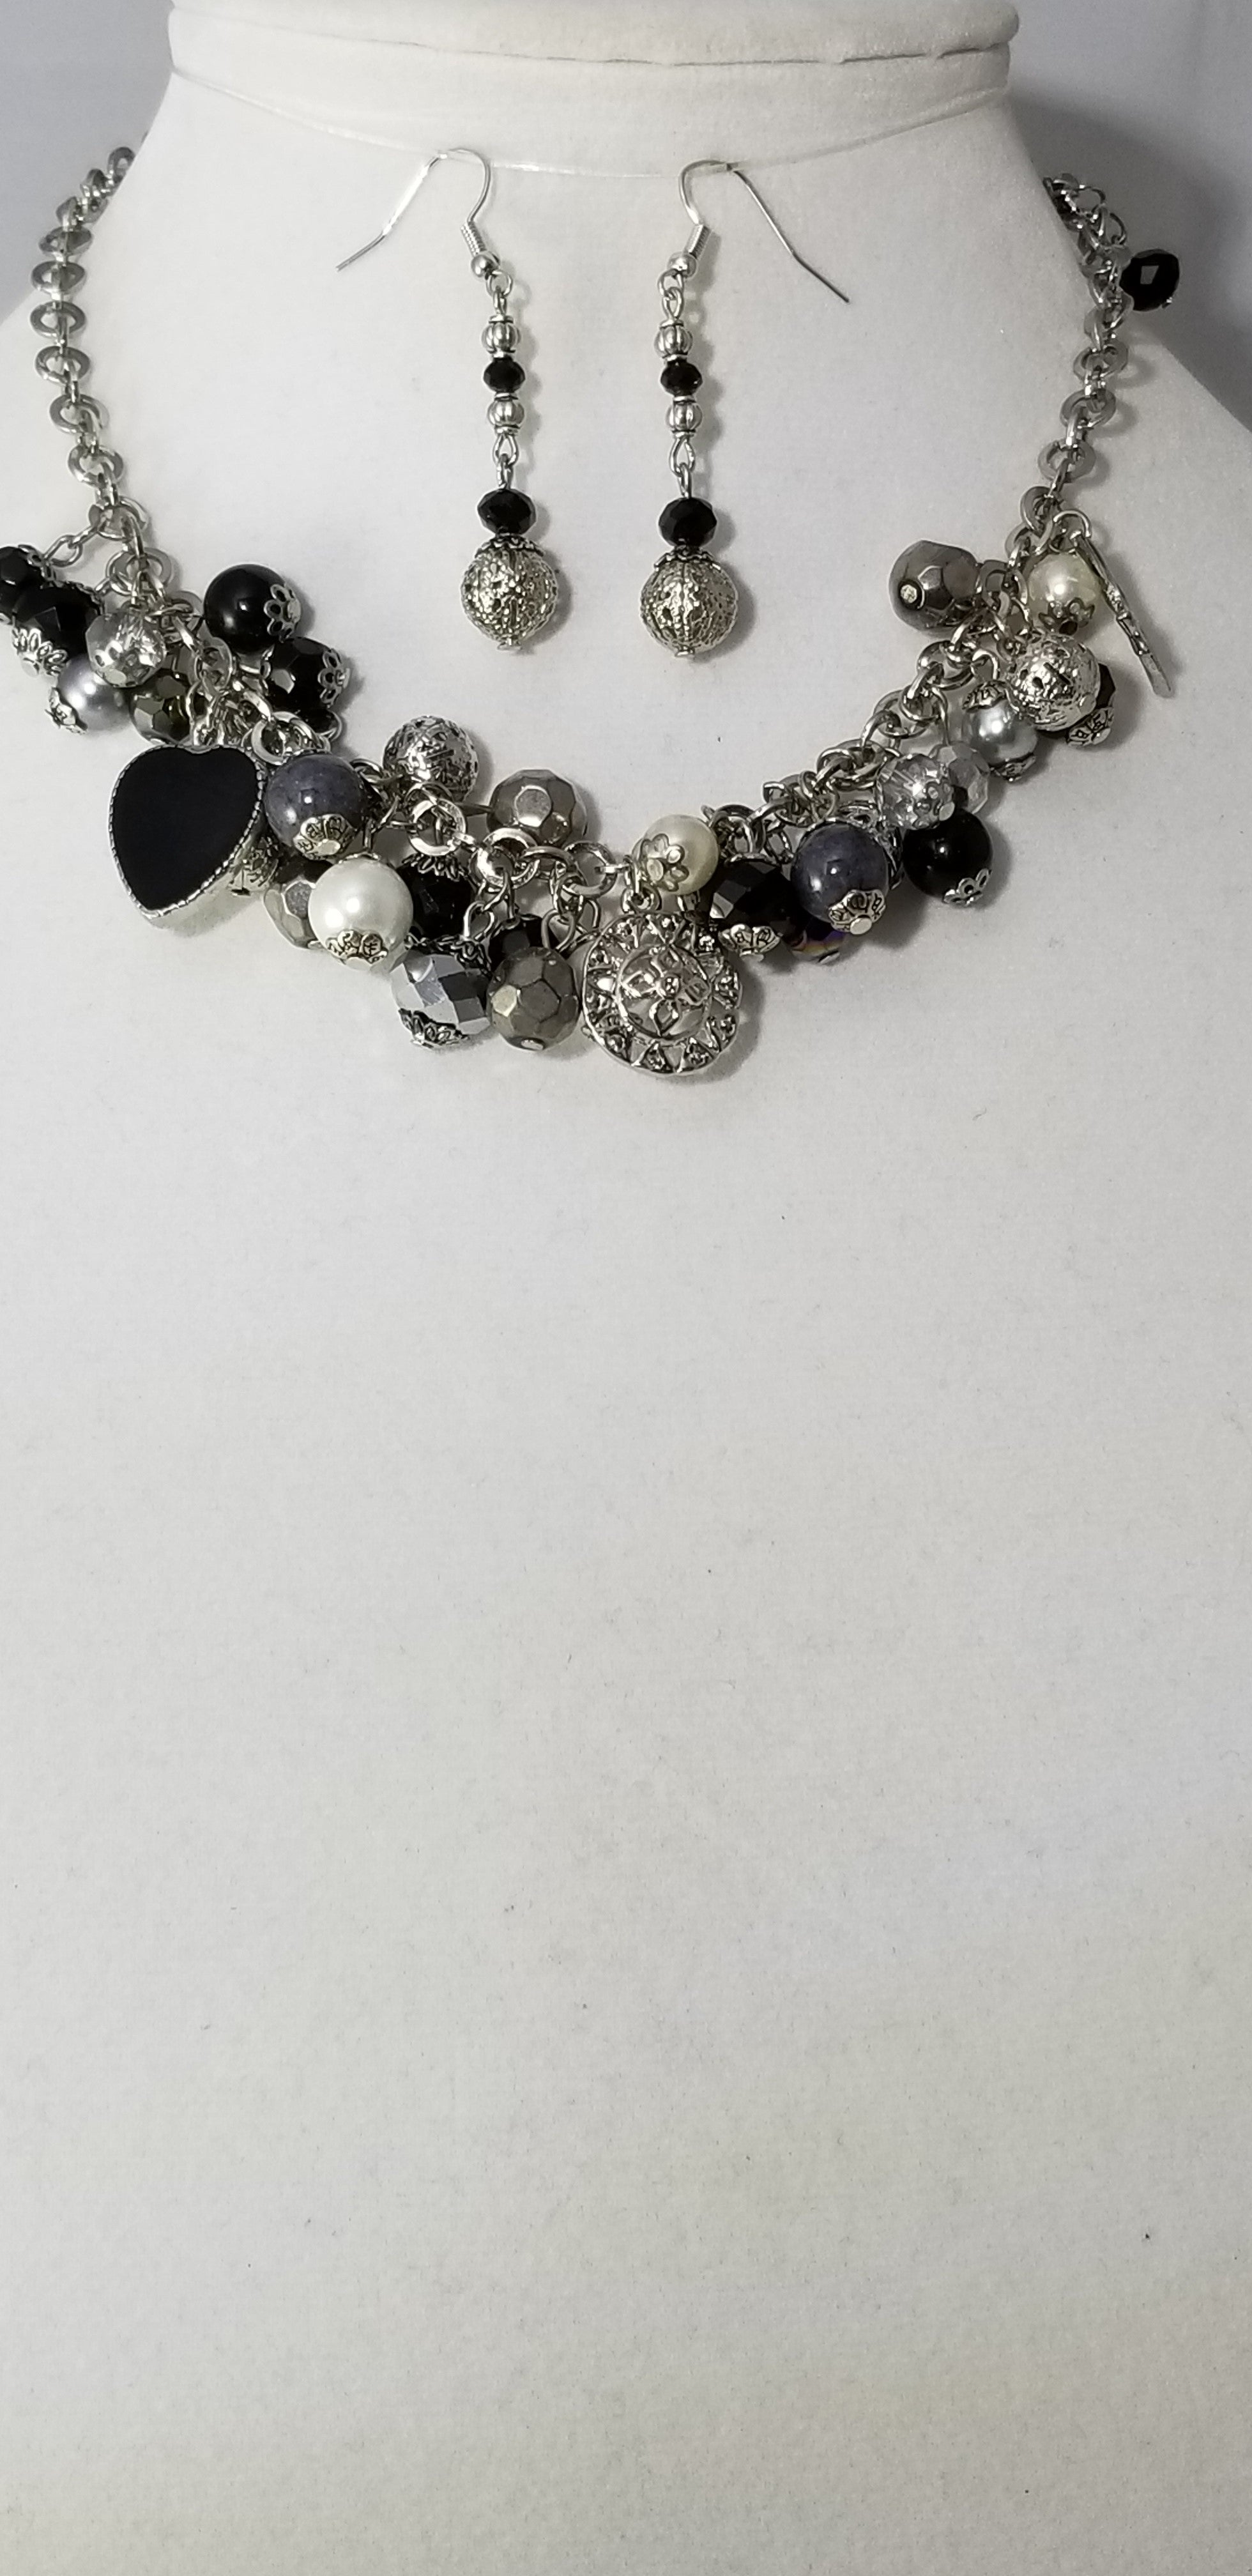 Black Night Necklace with Earrings